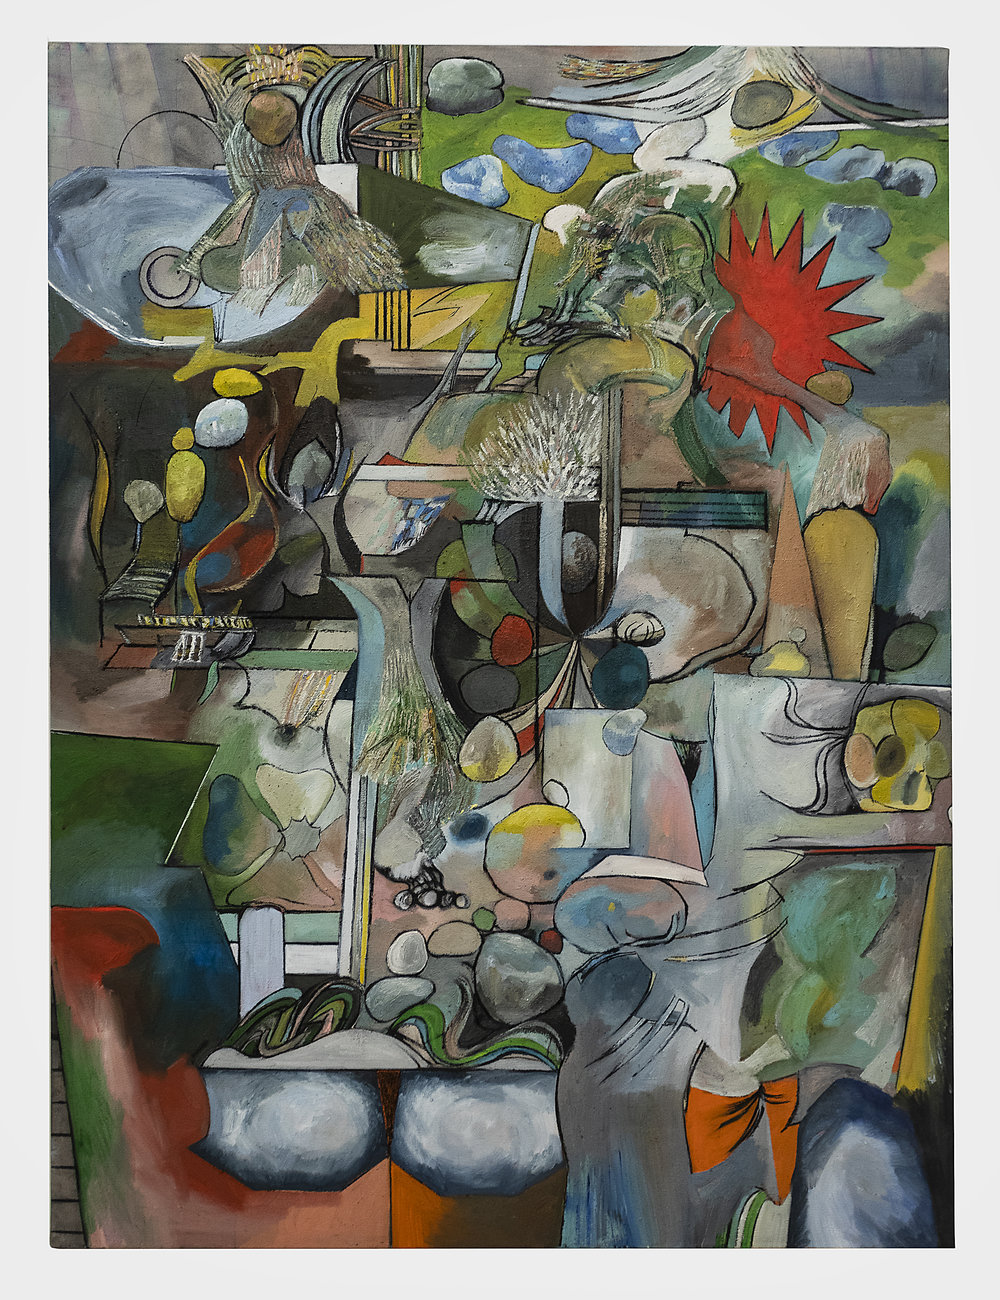 Matias Argañaraz  Untitled (A.T.i.O.)  2018 Oil, acrylic, and charcoal on canvas 56 x 42 inches